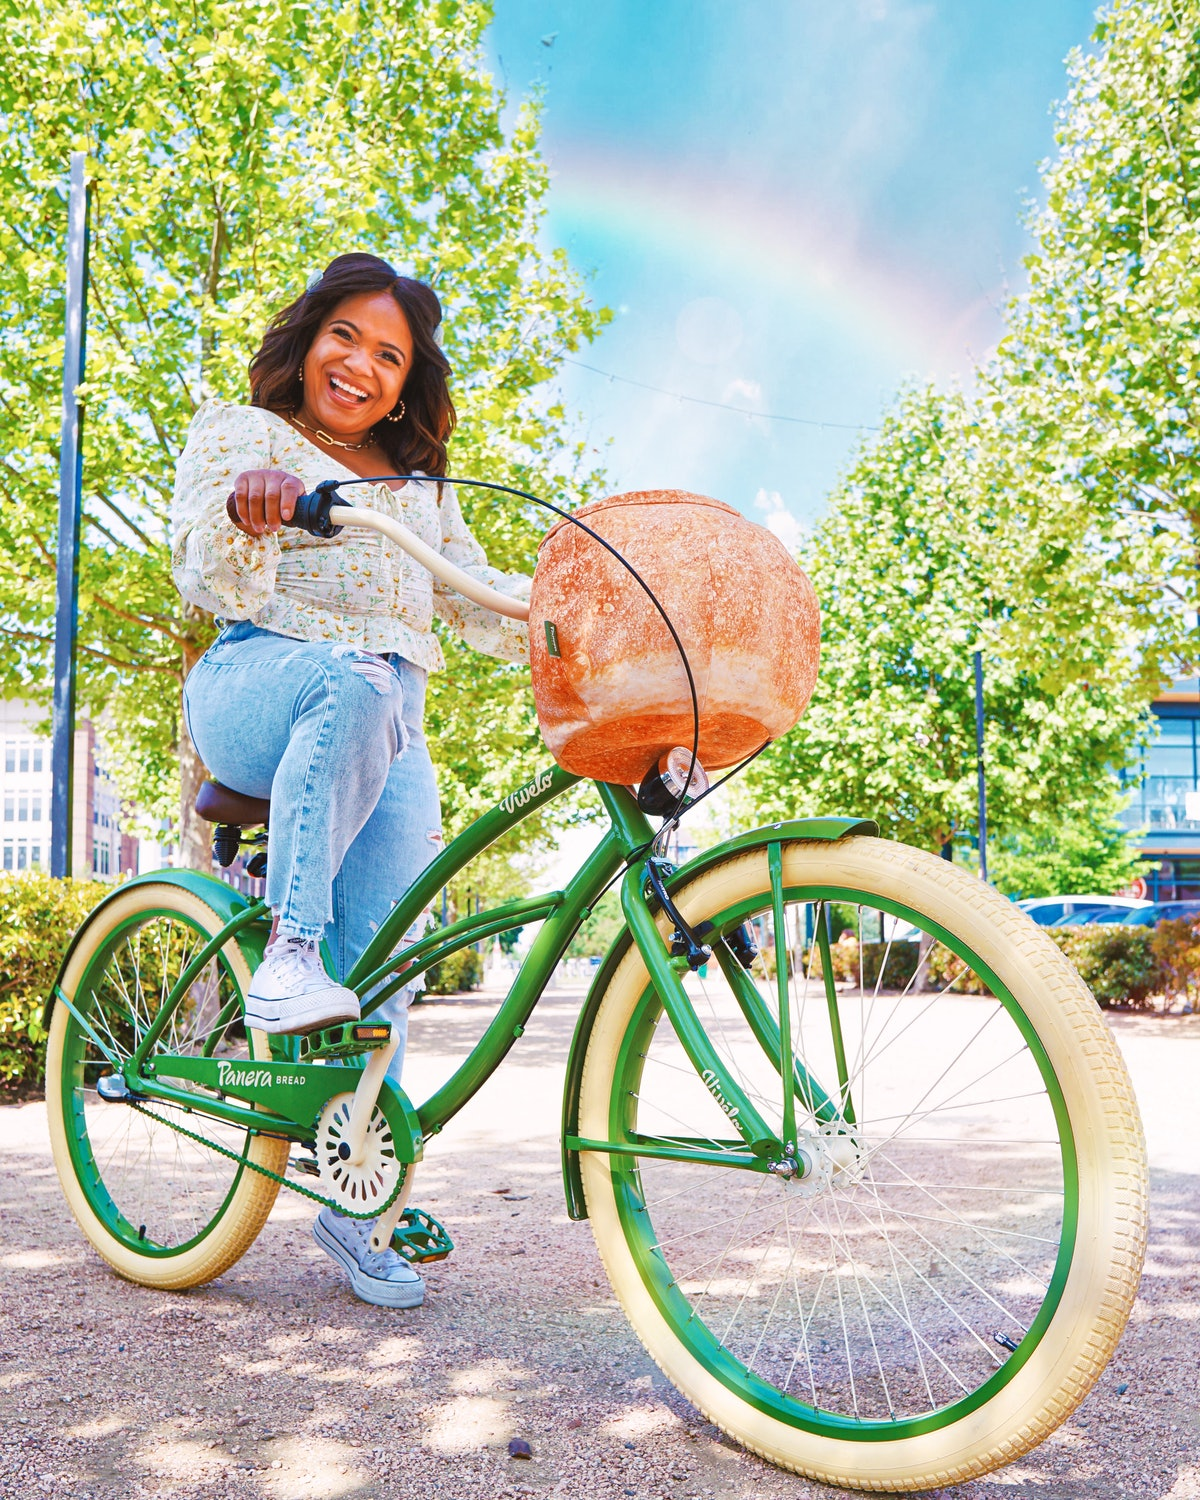 Here's how to enter Panera's Bread Bowl Bike sweepstakes.